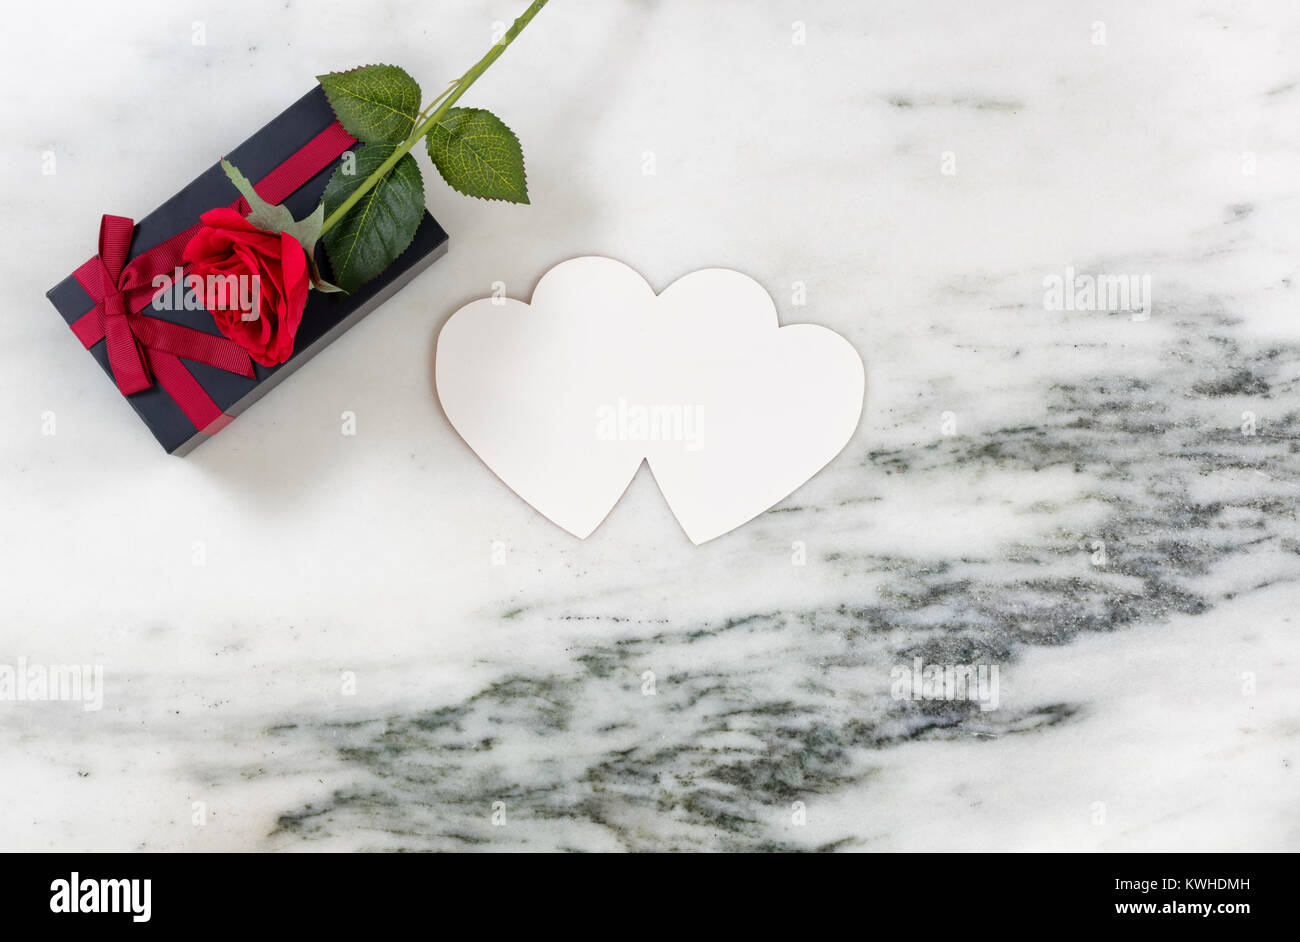 Single Red Rose On Dark Confezione Regalo Con Cuore Scheda Sagomata